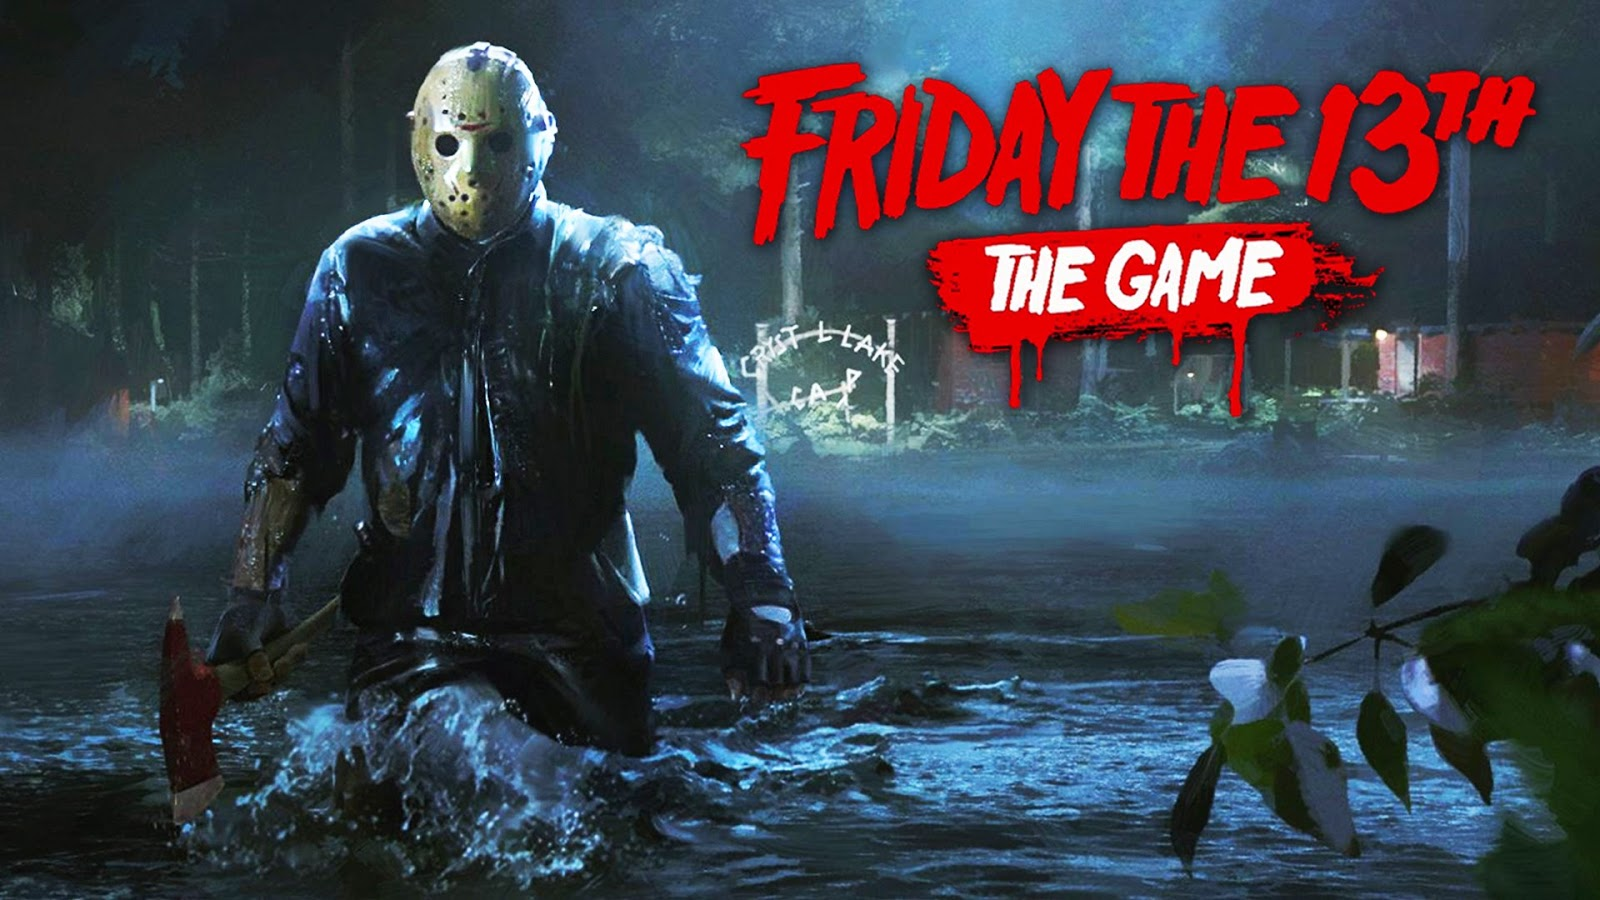 friday 13th the game - CODEX